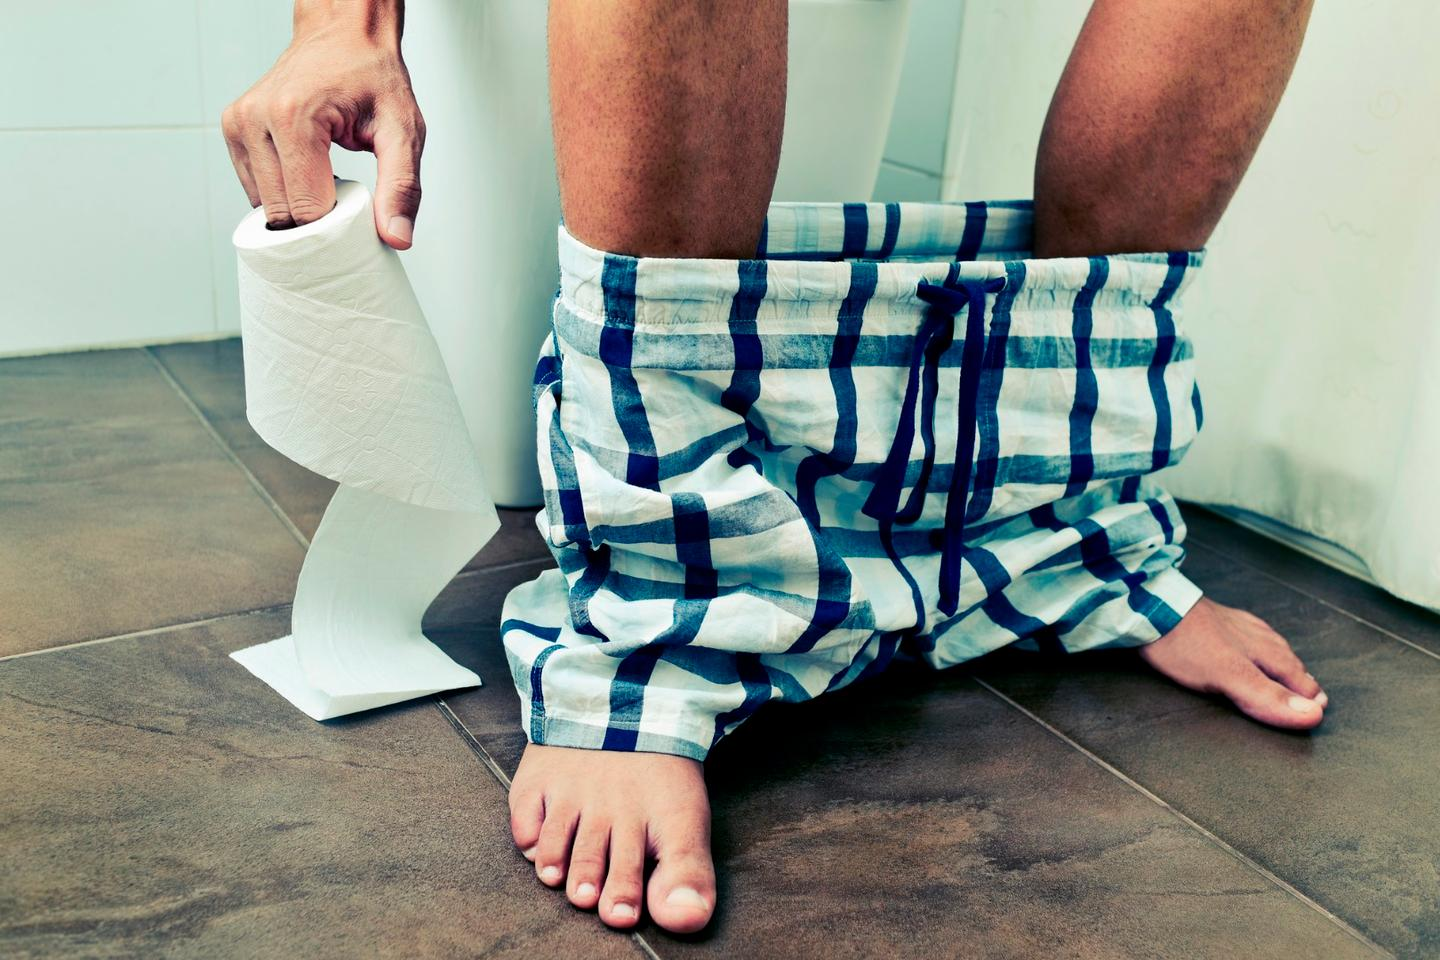 Shining light onto nerves in the gut could help relieve chronic constipation